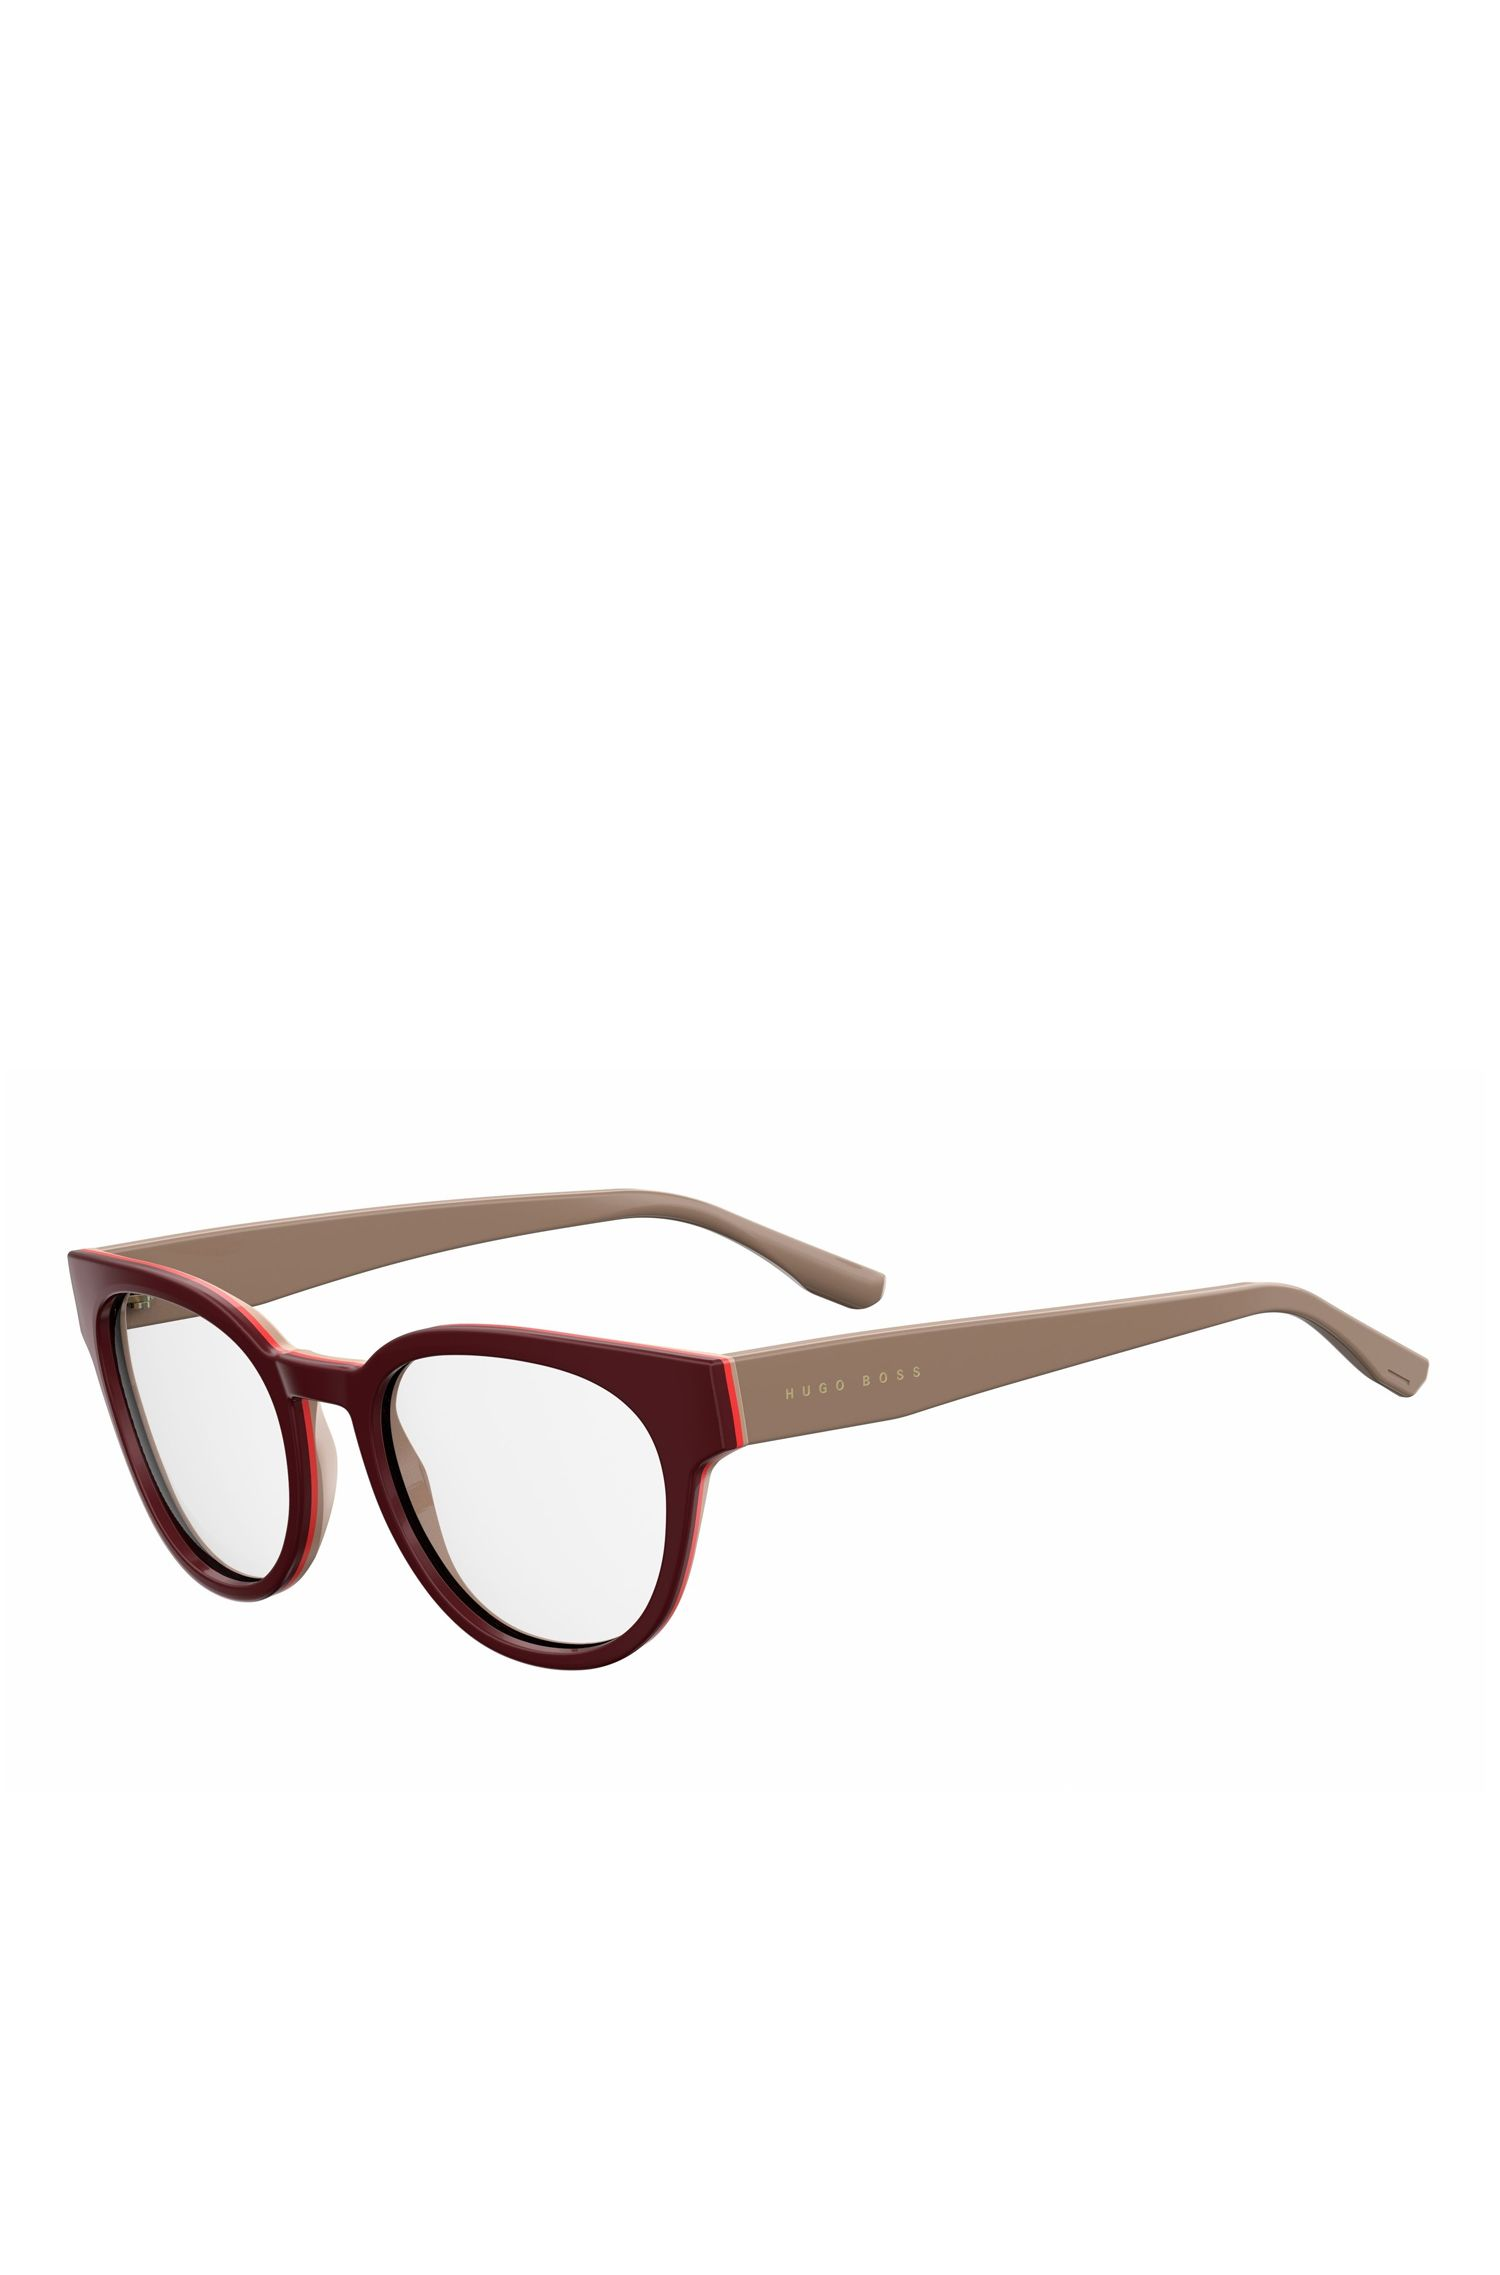 Burgundy Acetate Round Optical Frames | BOSS 0889 0U2